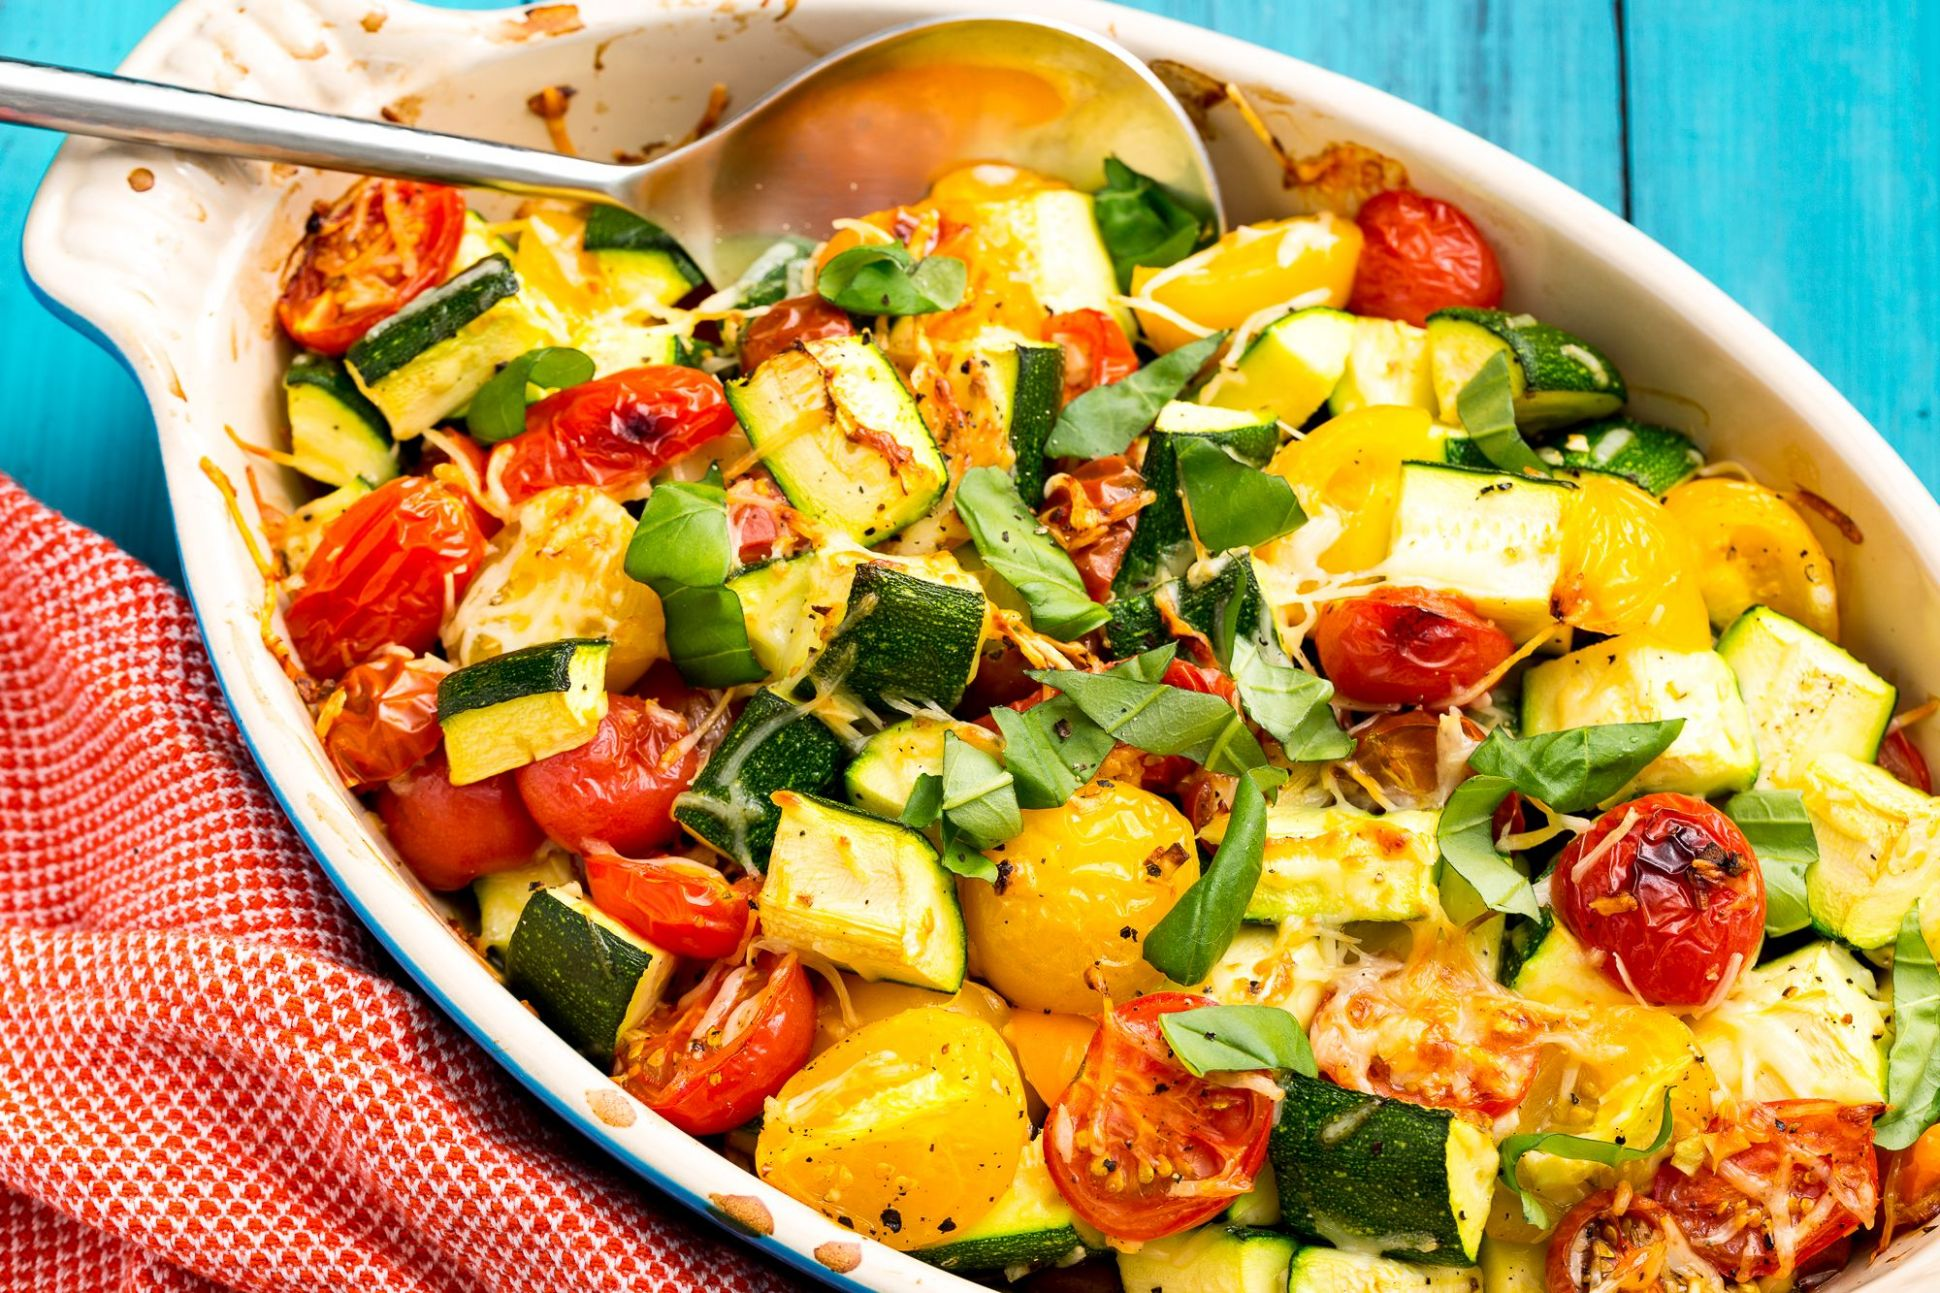 11+ Easy Summer Vegetable Recipes - Cooking with Fresh Summer ..